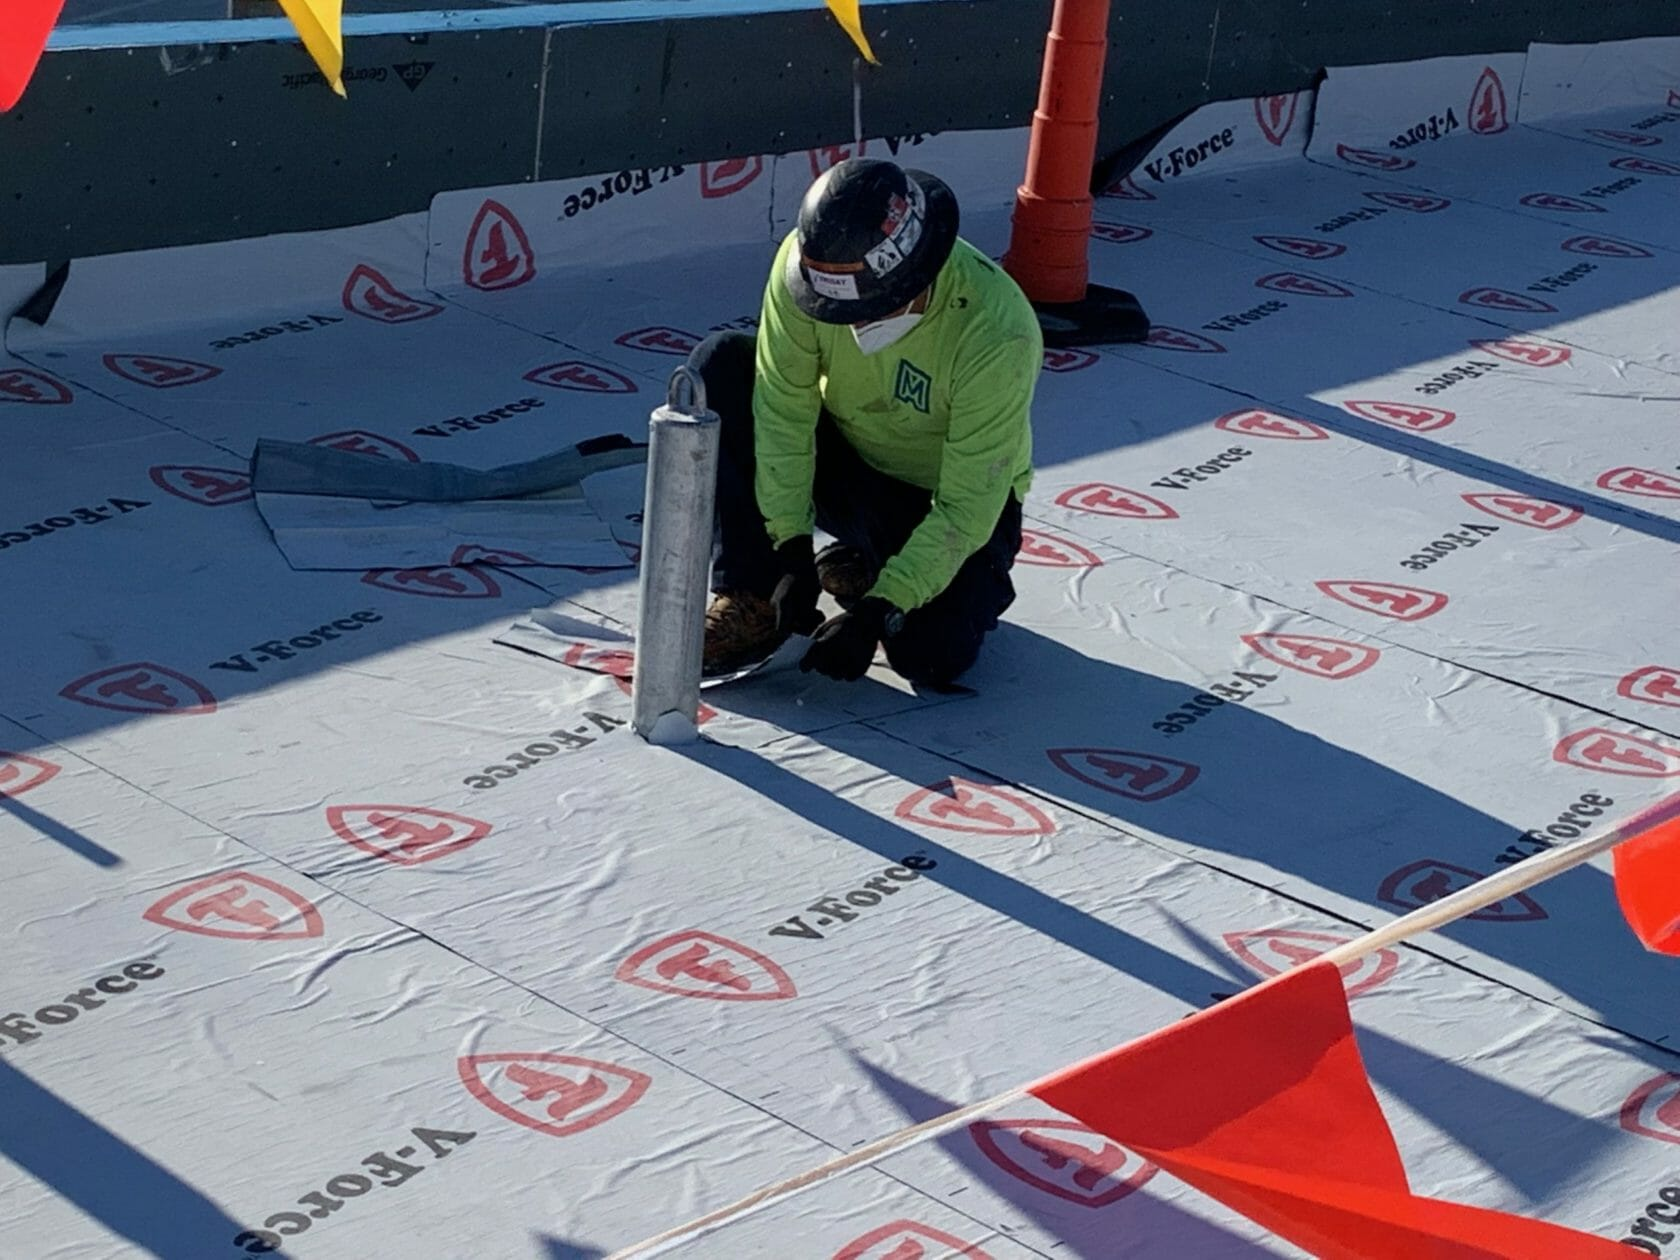 commercial-roof-worker-on-Nashville-rooftop-during-COVID-19